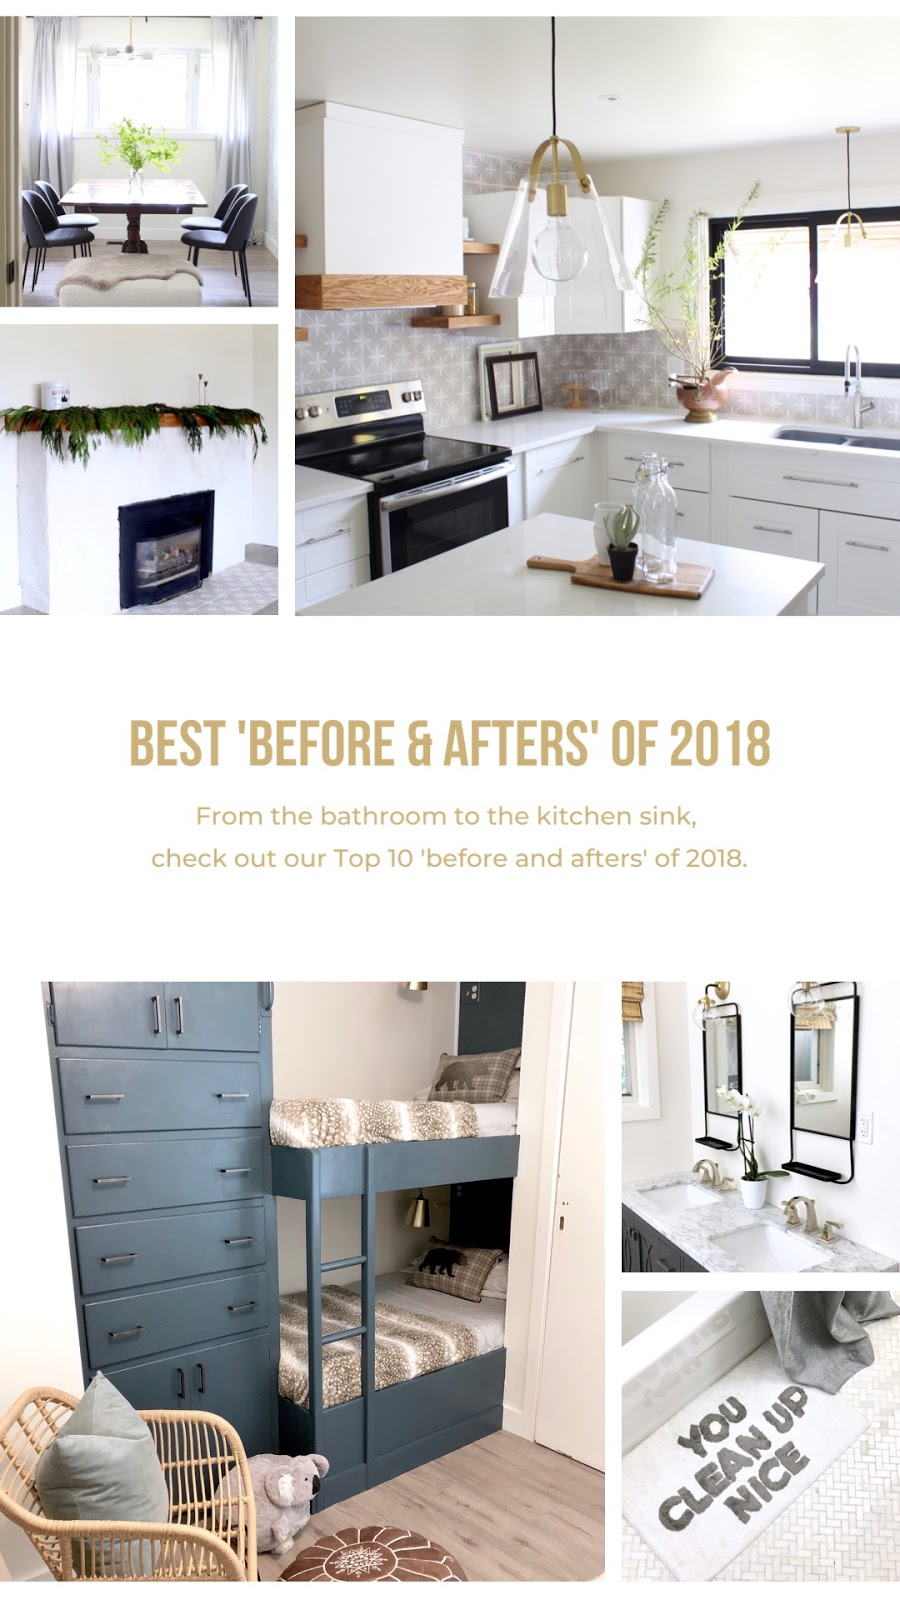 Top-ten-before-and-afters-of-2018-title